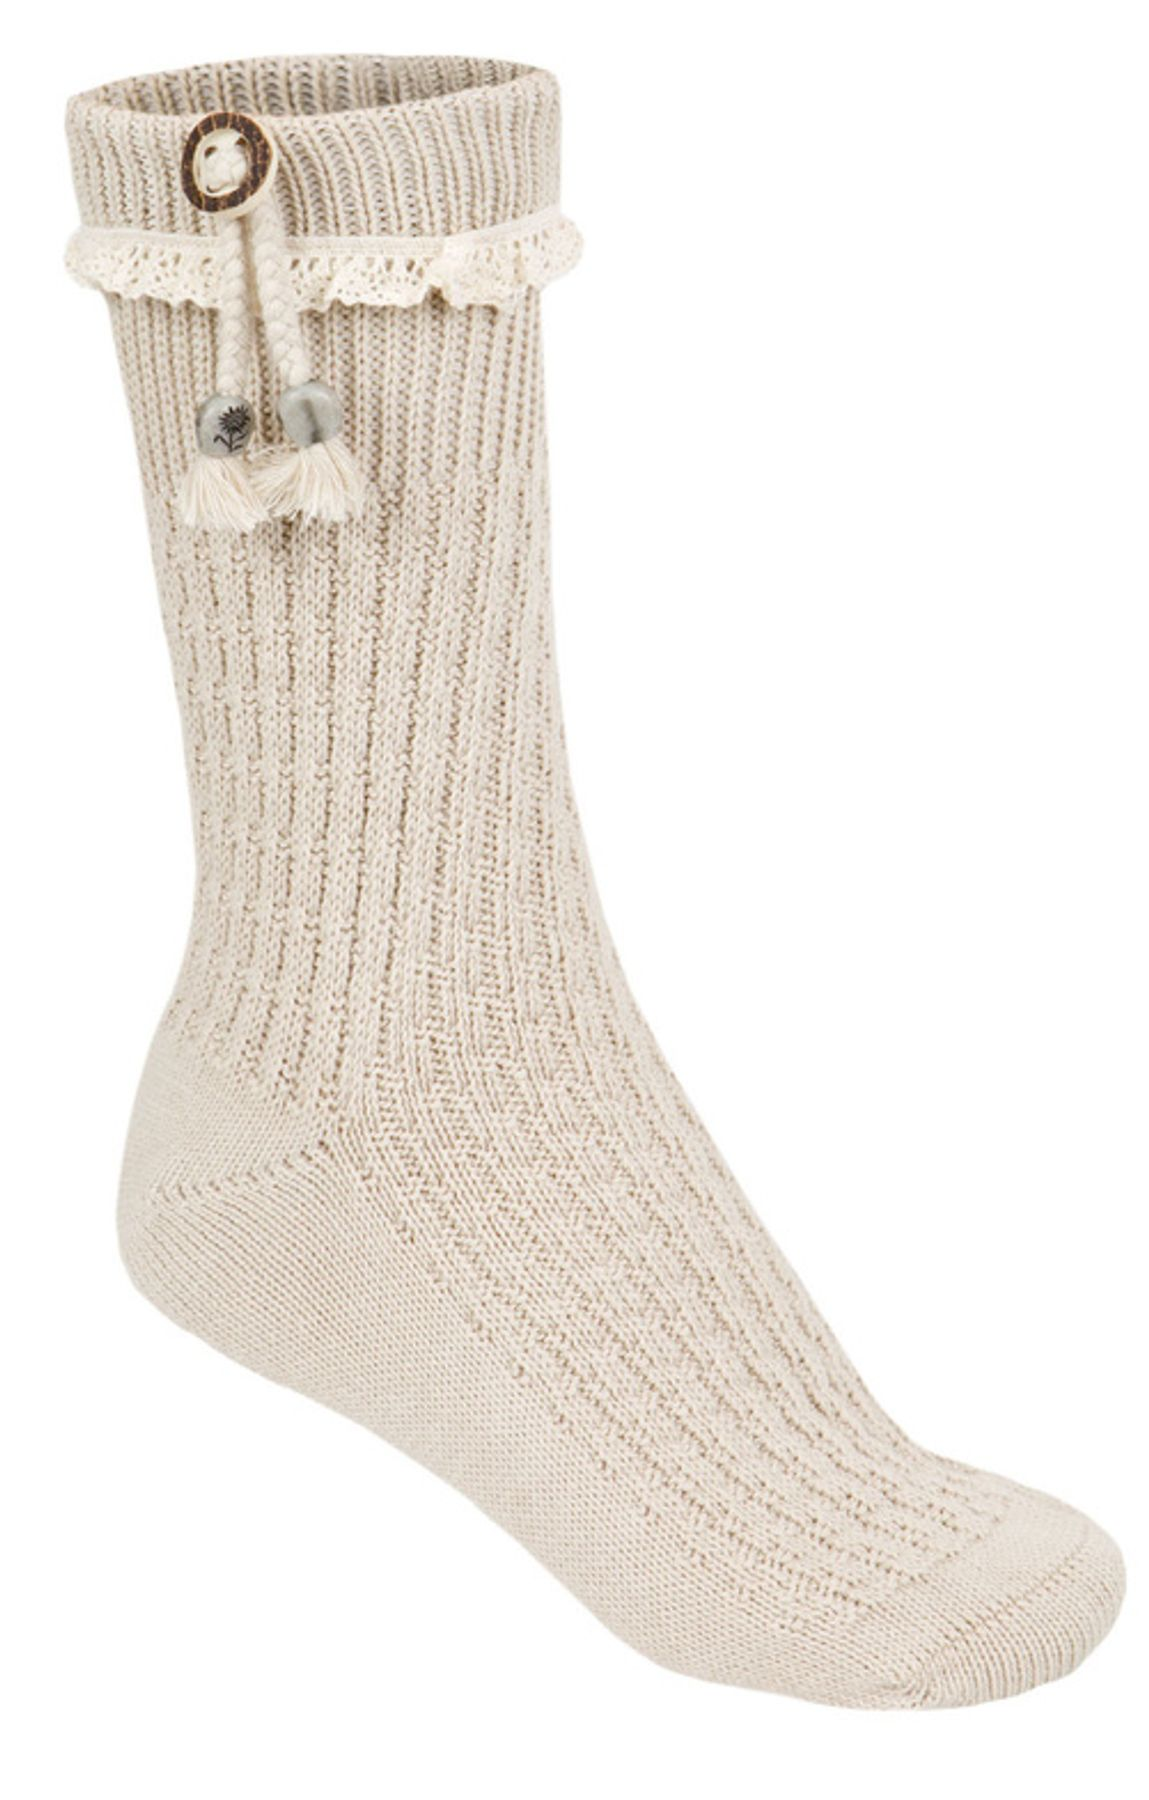 Stockerpoint- Damen Trachten Socken in Natur, 26020